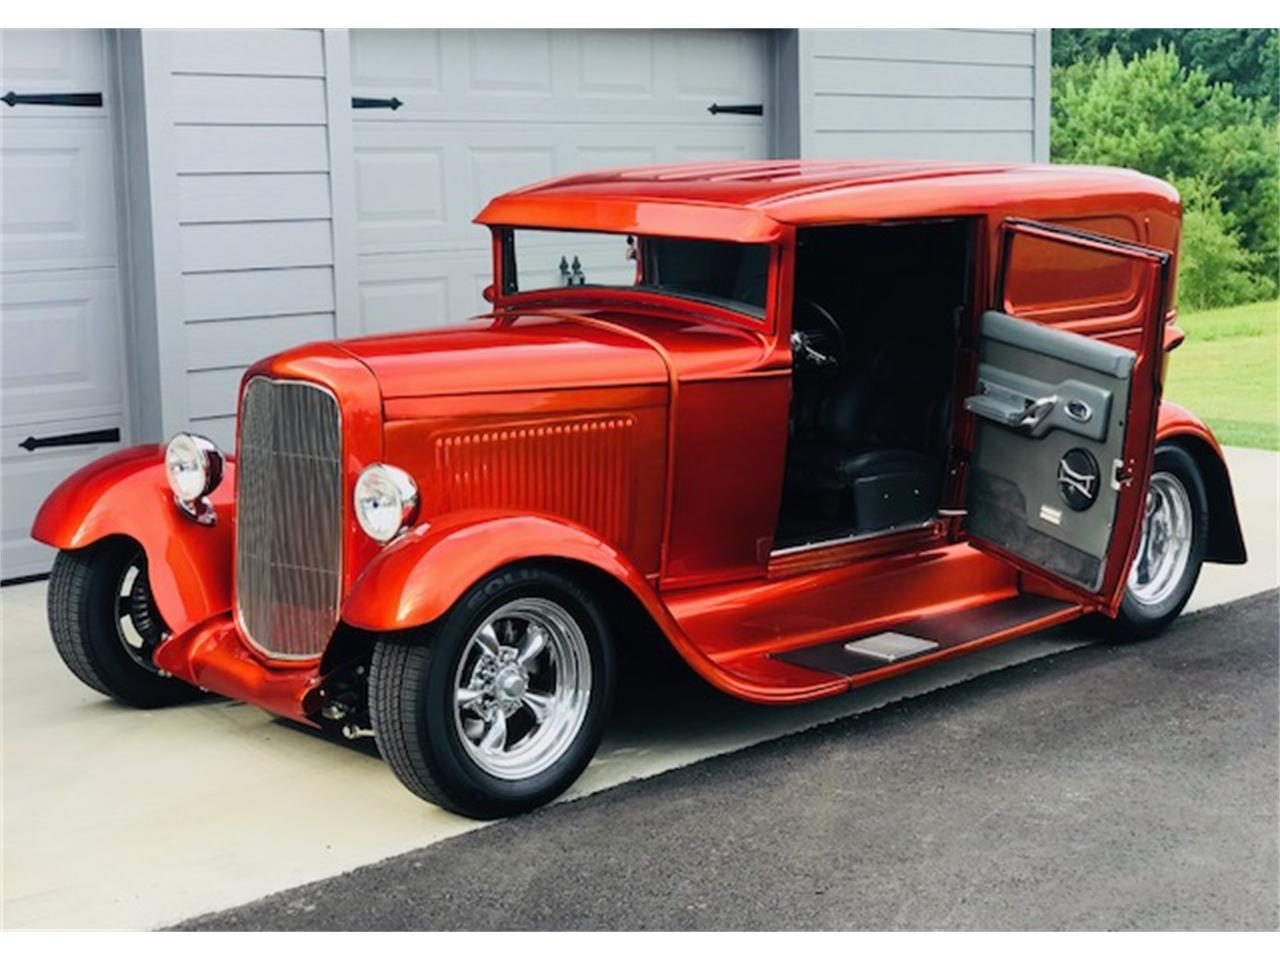 Large Picture of Classic '30 Ford Street Rod located in South Carolina - $39,995.00 - OB6L